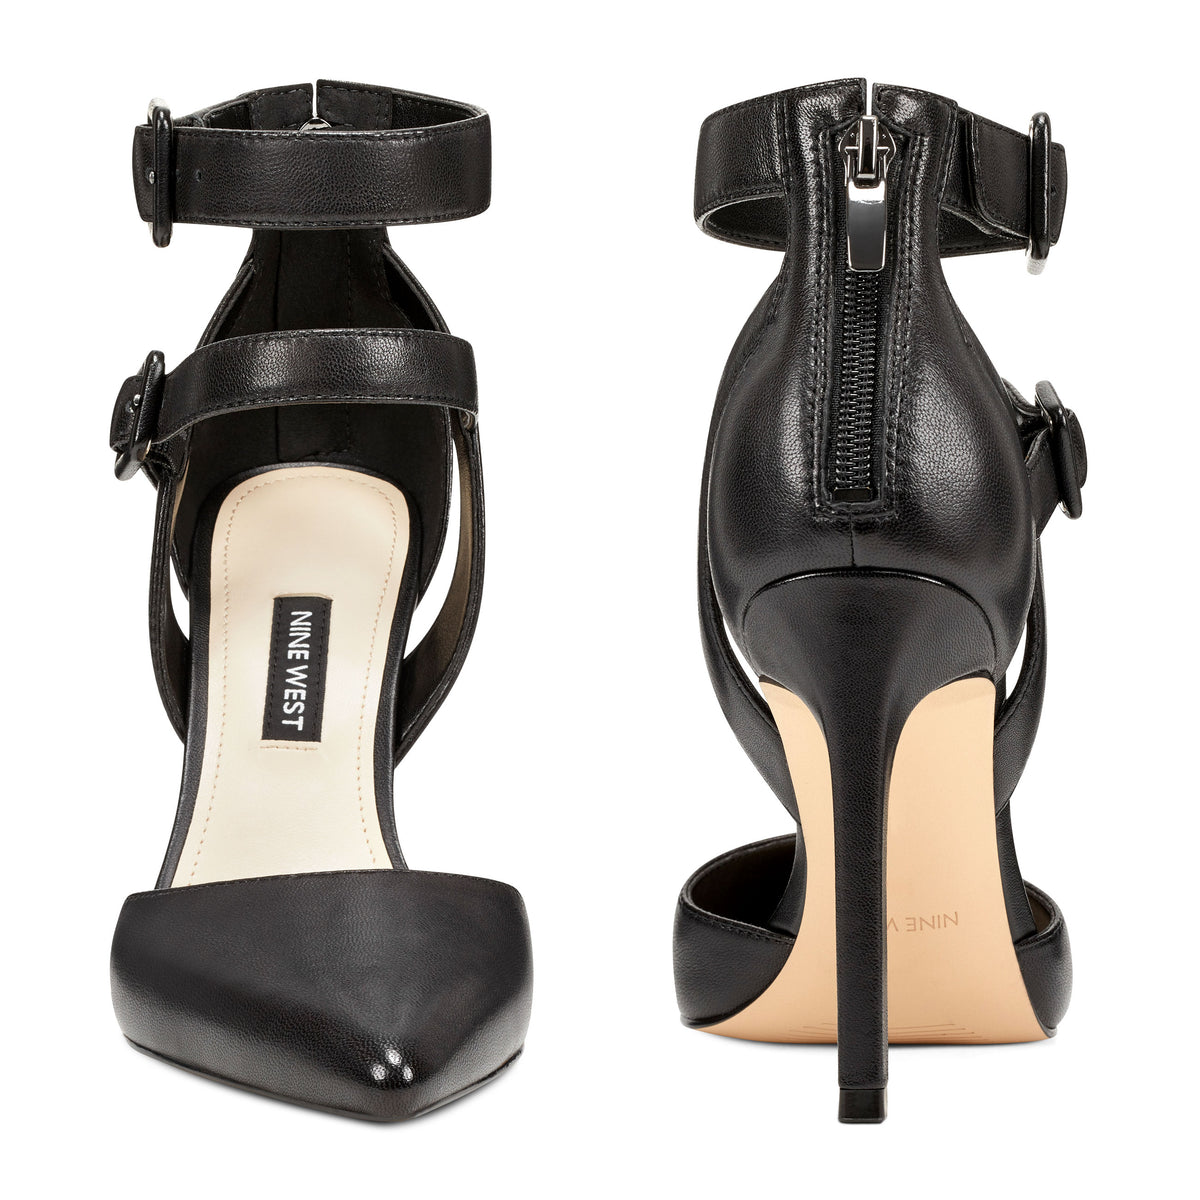 tereza-dress-pump-in-black-leather